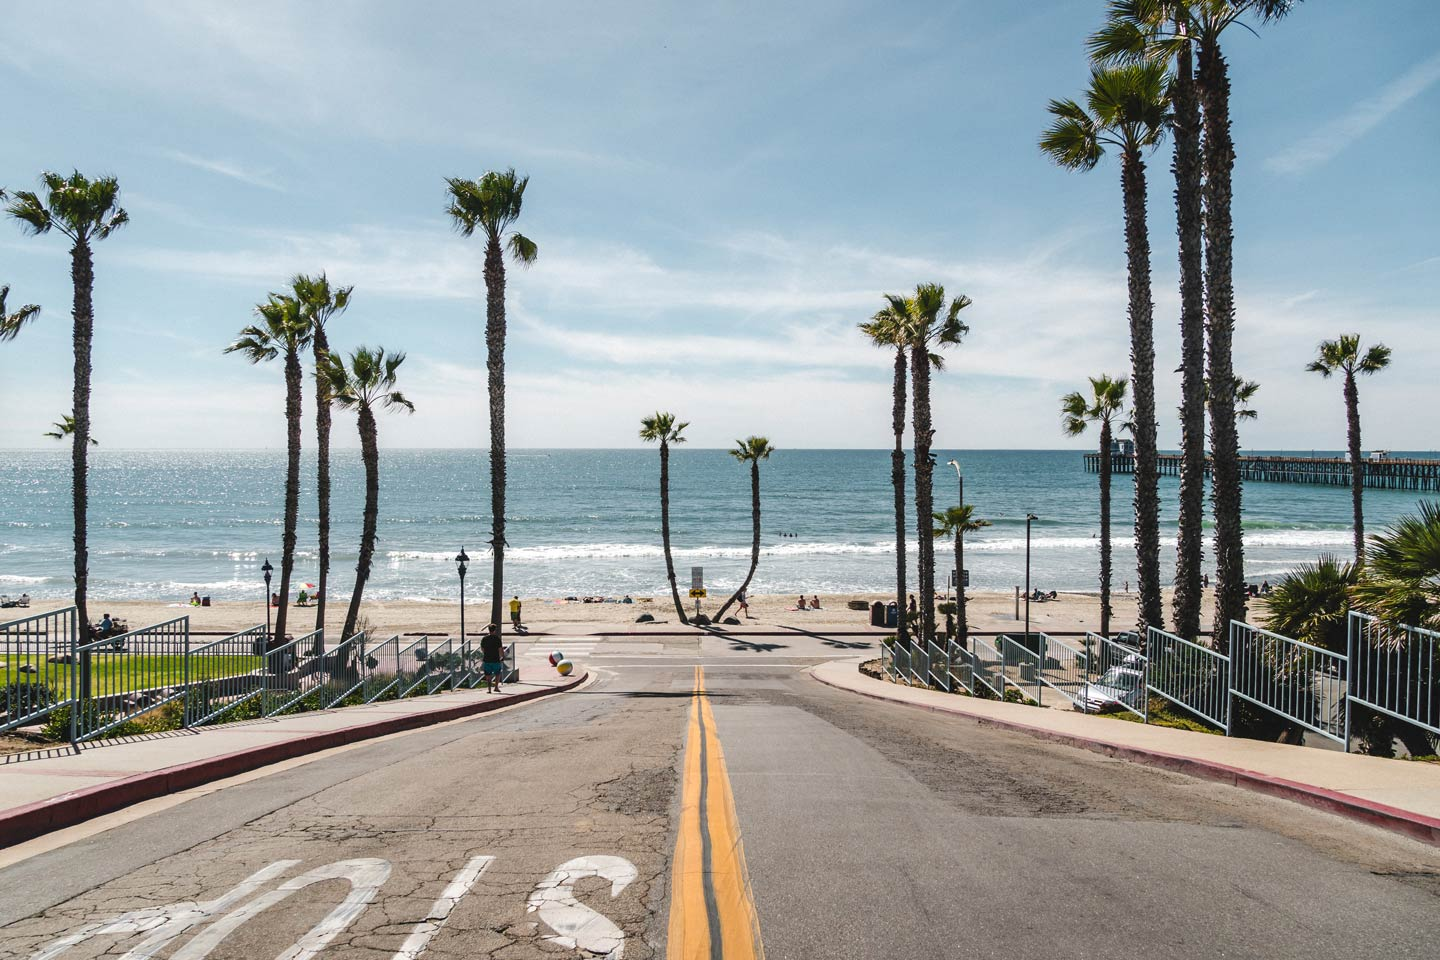 The palm tree-lined road to the Oceanside Pier and Harbor.